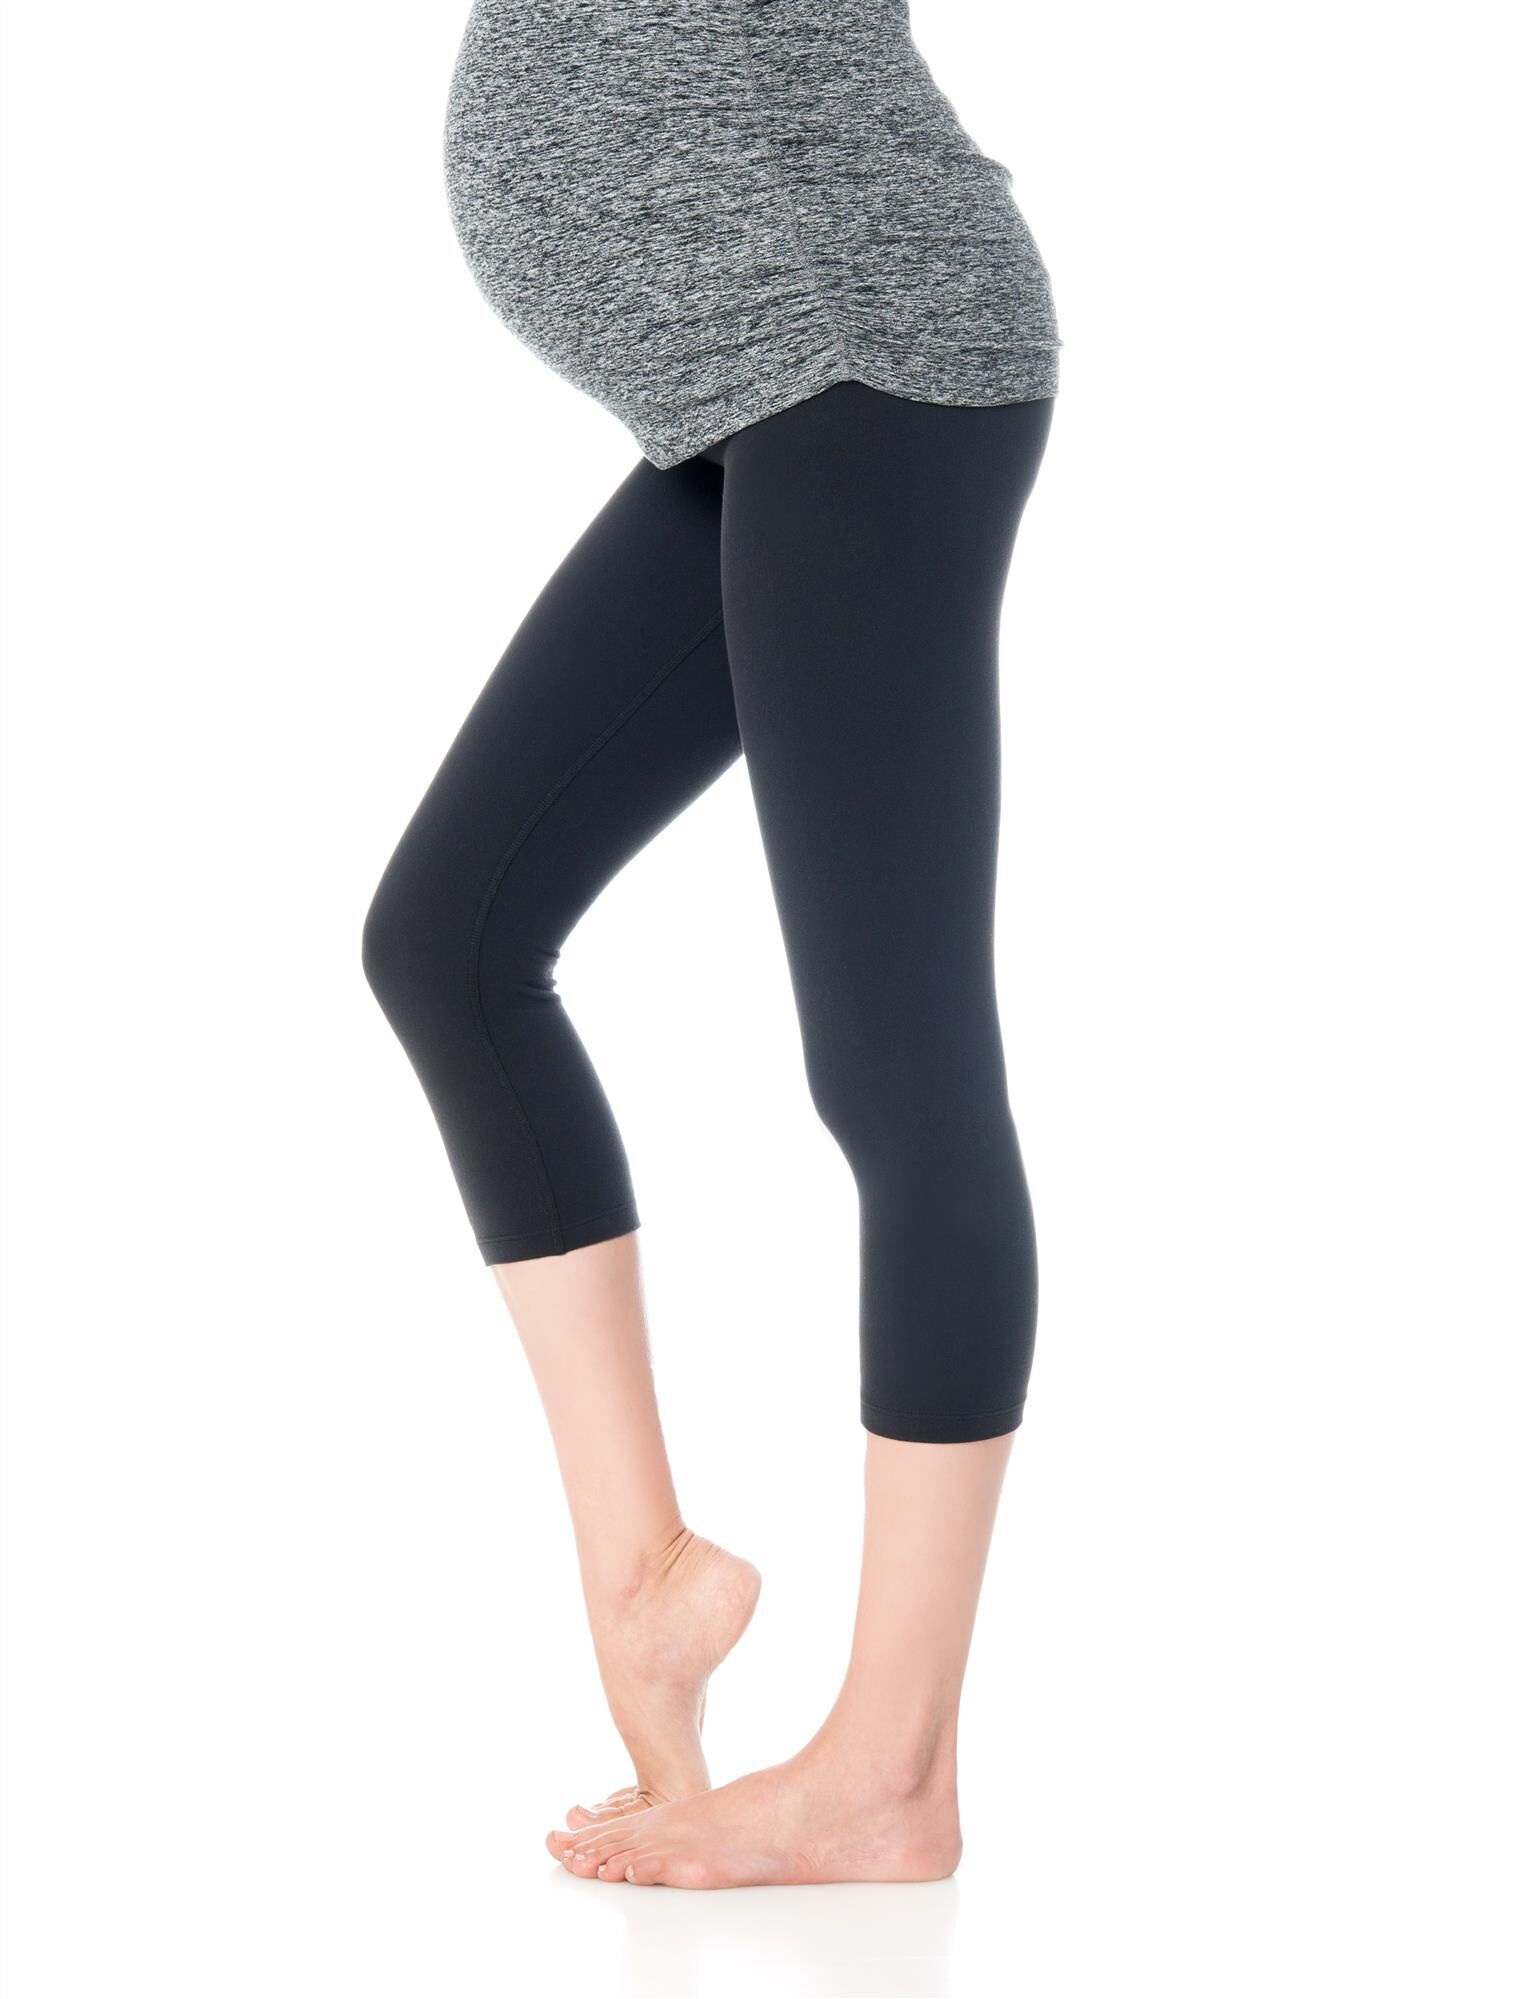 Beyond The Bump What's Kicking Foldover Maternity Leggings